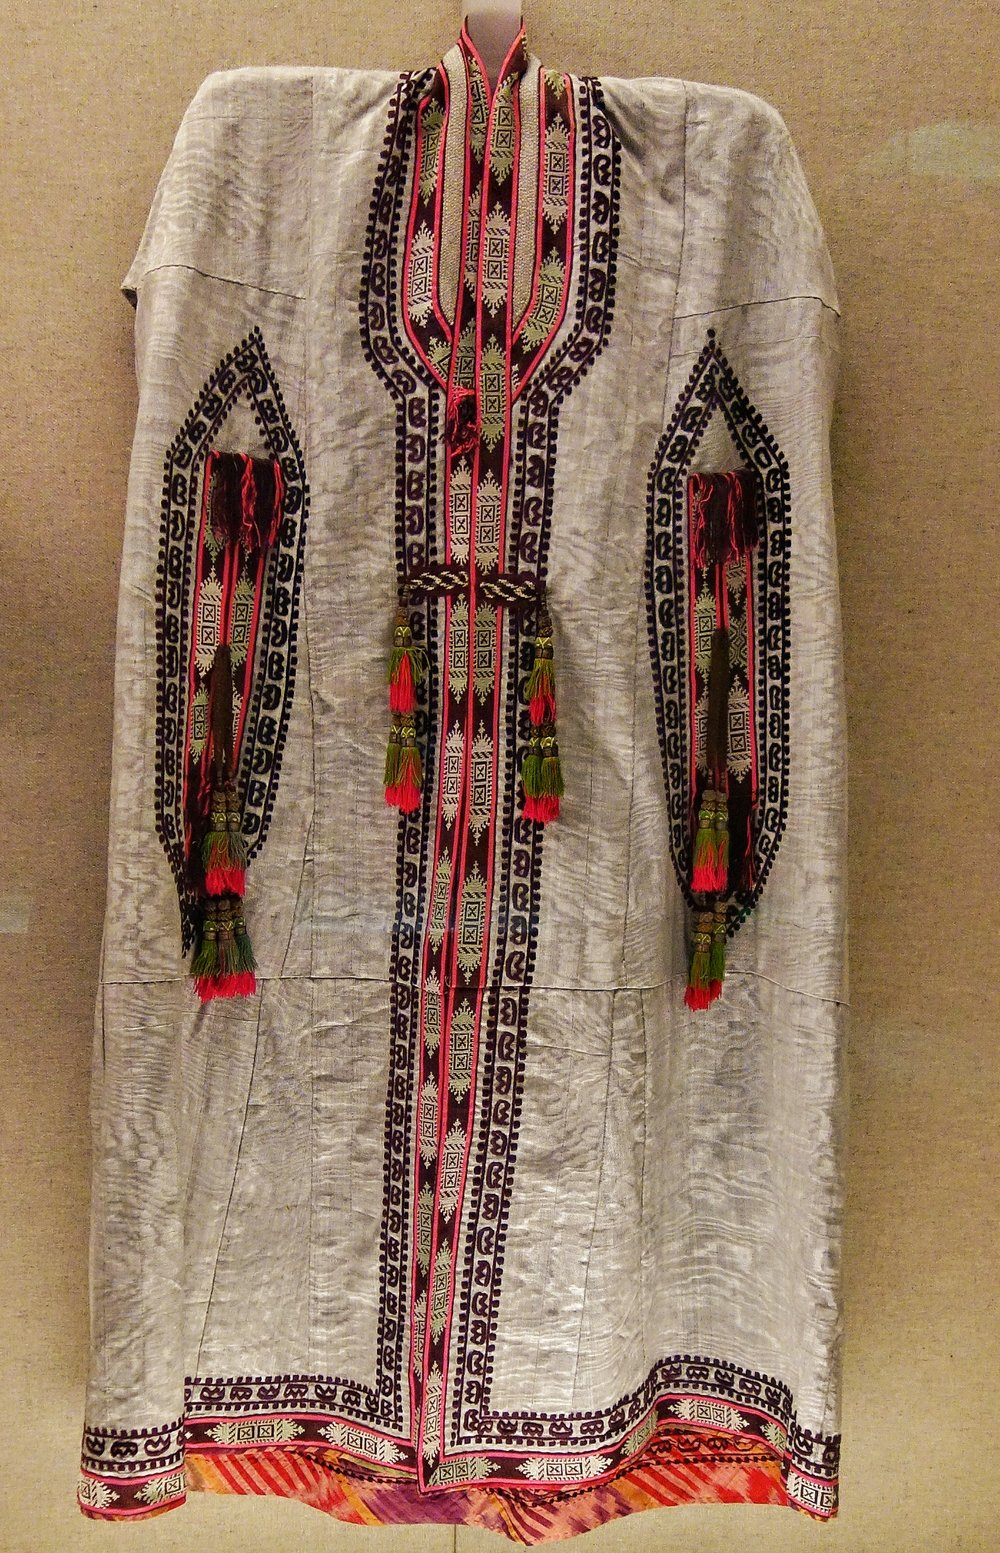 Uzbek Woman's Dress with Embroidery